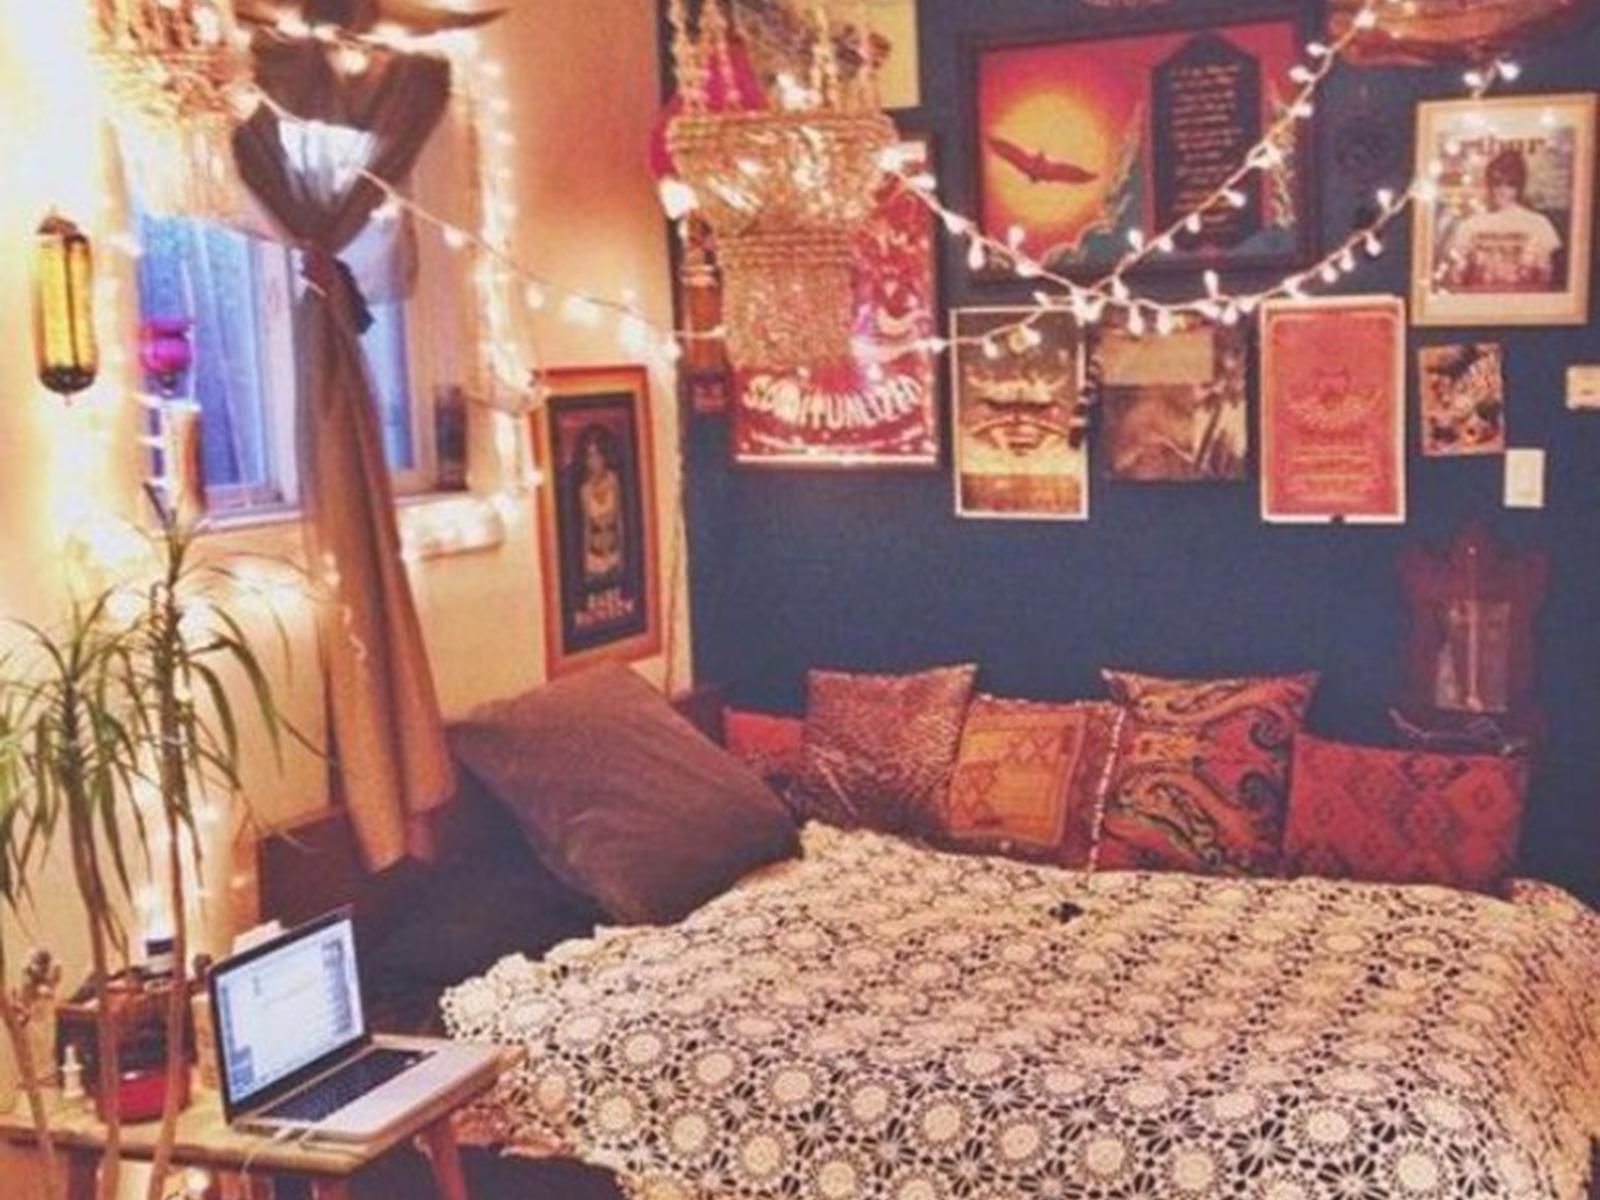 26+ Colorful Boho Bedroom Decor Diy images